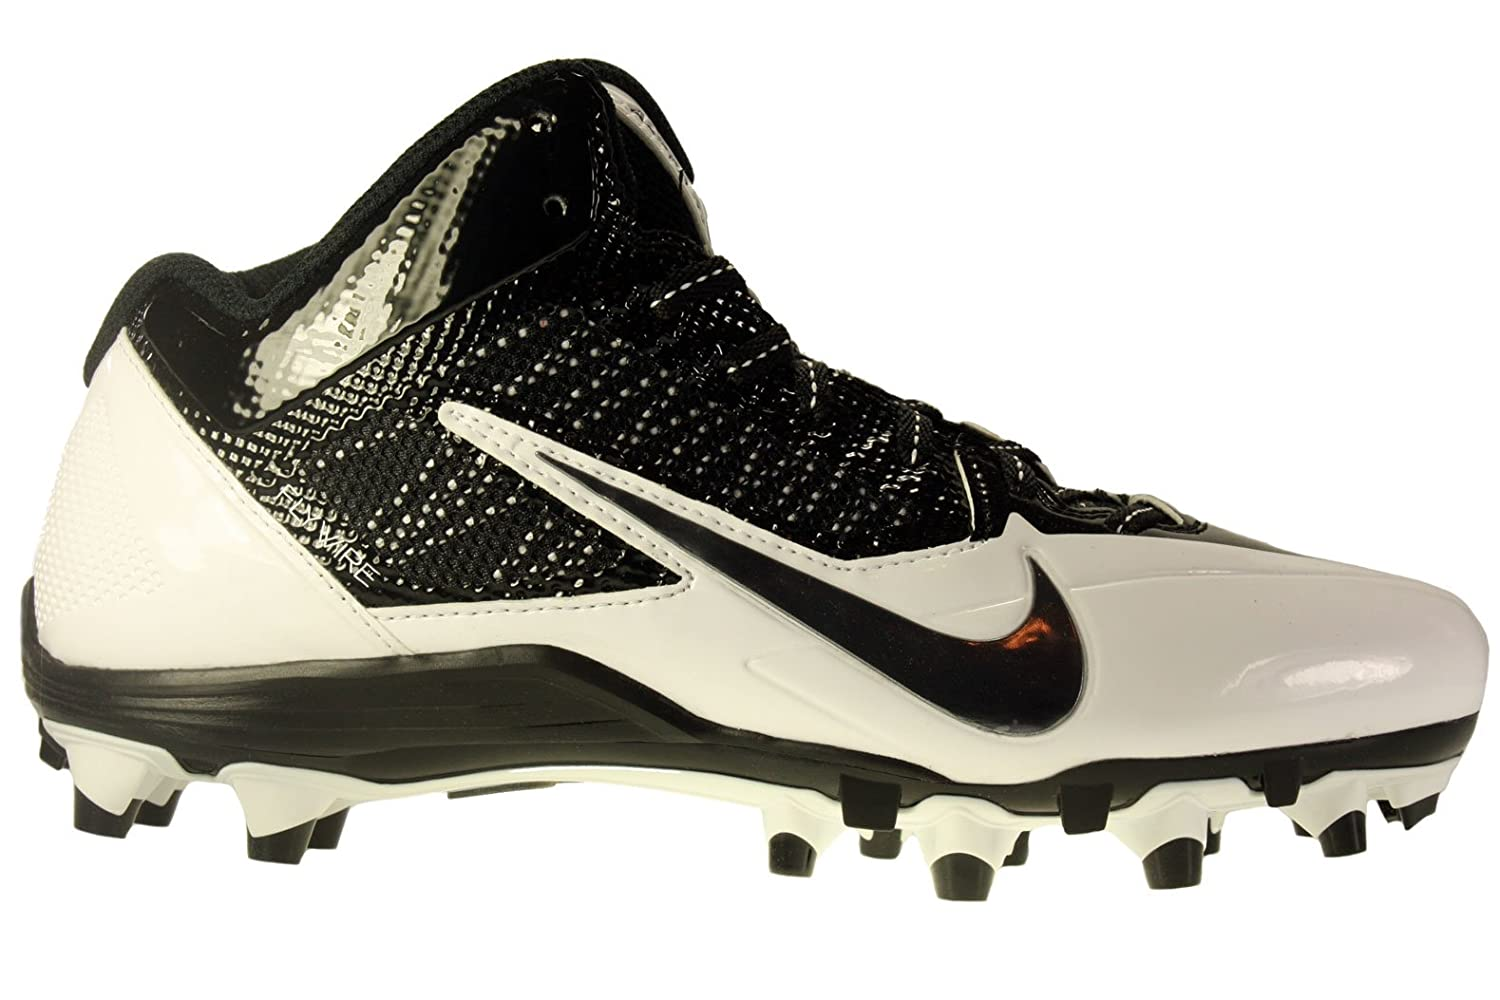 Big Bargains Outlet. GO TO IT SPORTS. JAM-RIZK, LLC. Just The Basics. Limitless and Beyond. Overstock. ShoesandFashions. Nike Mens Vapor Pro Lo TD Football Cleats USC Trojans, Product Image. Price $ NIKE Men's Alpha Menace Pro Mid Football Cleat nk ( D(M) US) Product Image. Price $